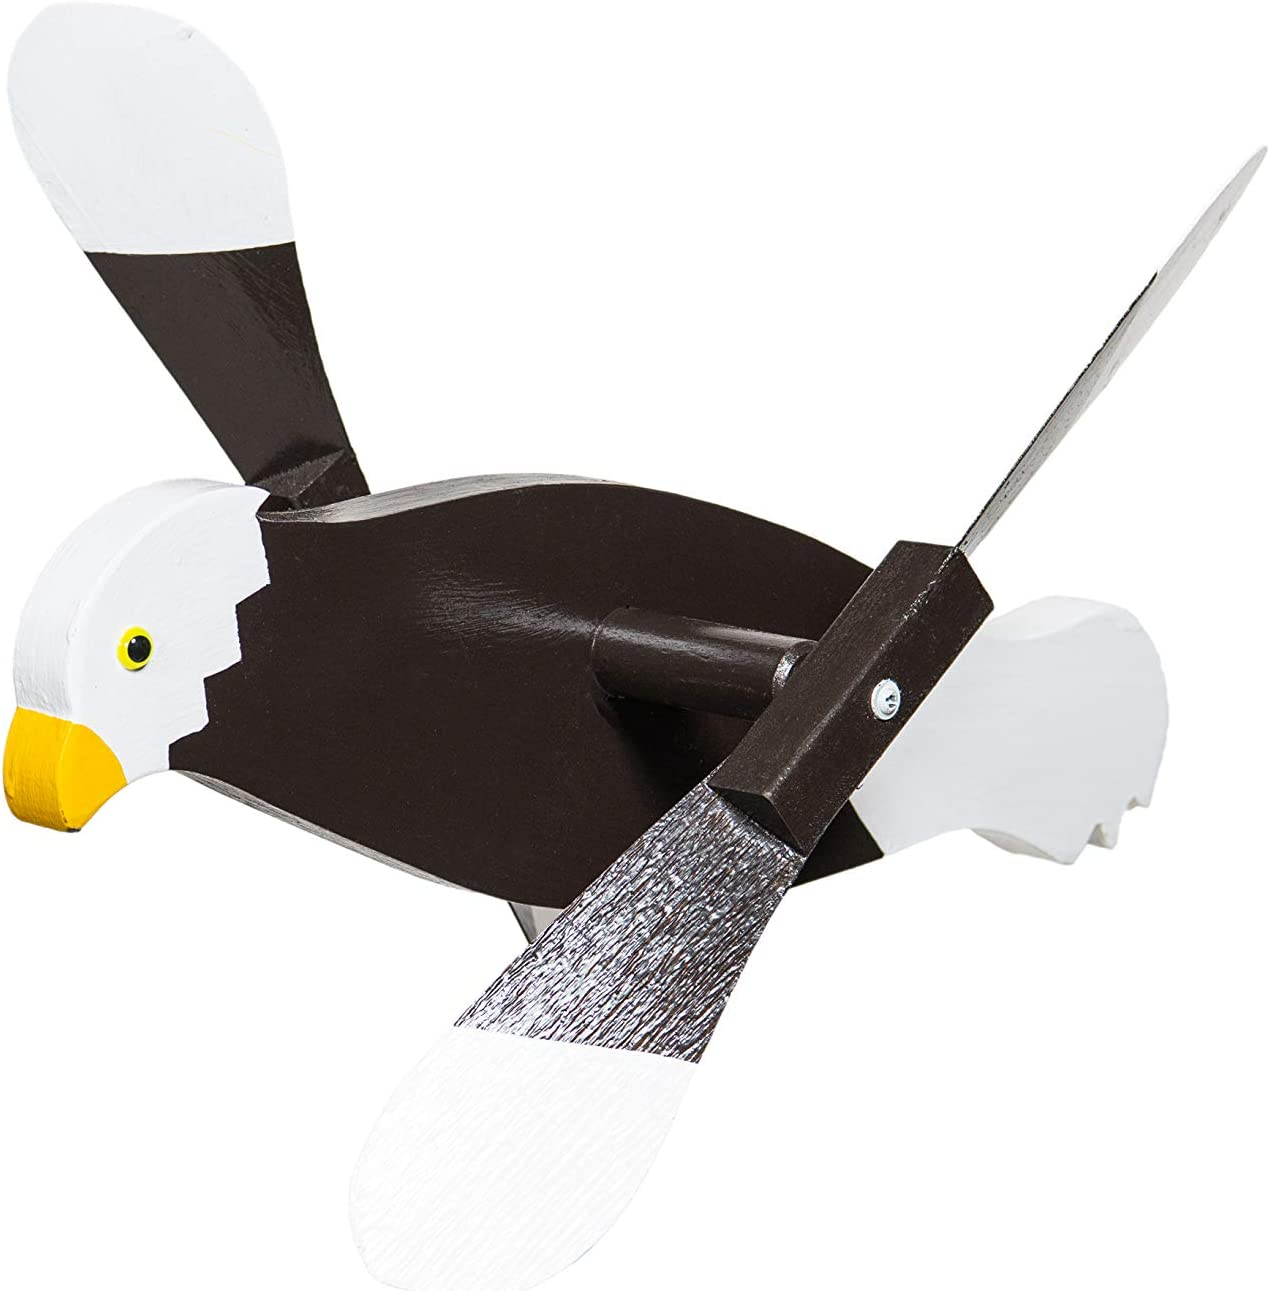 DutchCrafters Fun Whirligig Whirlybird Wind Spinner for Outdoors, Lawn, Garden, Yard Décor - Amish Made in USA (Bald Eagle)